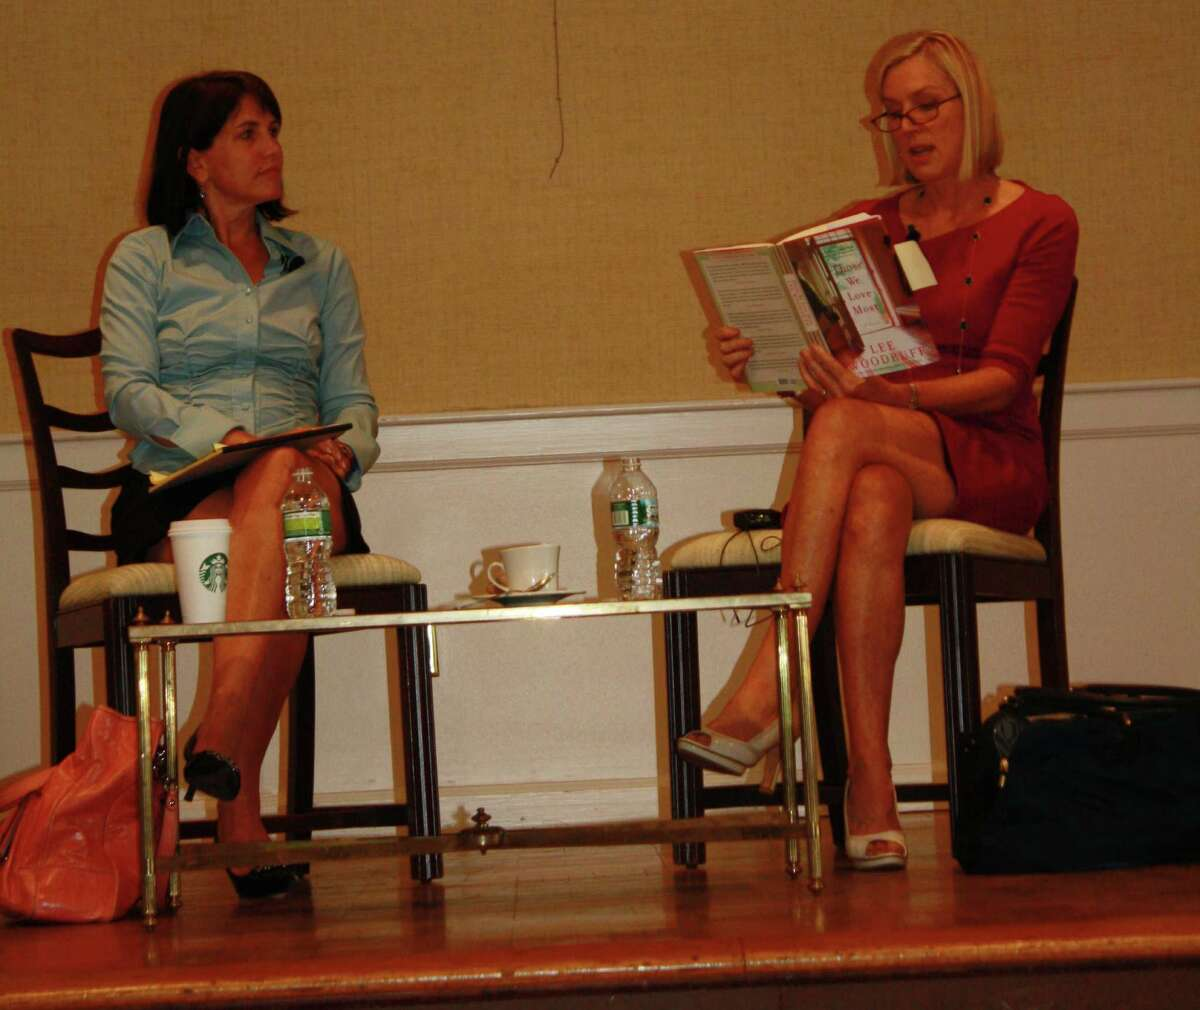 Lee Woodruff reads a passage from her first fiction novel, Those We Love Most, at the book launch held at Darien Community Assication in Darien, Conn. on Sept. 11. Sept. 11, 2012